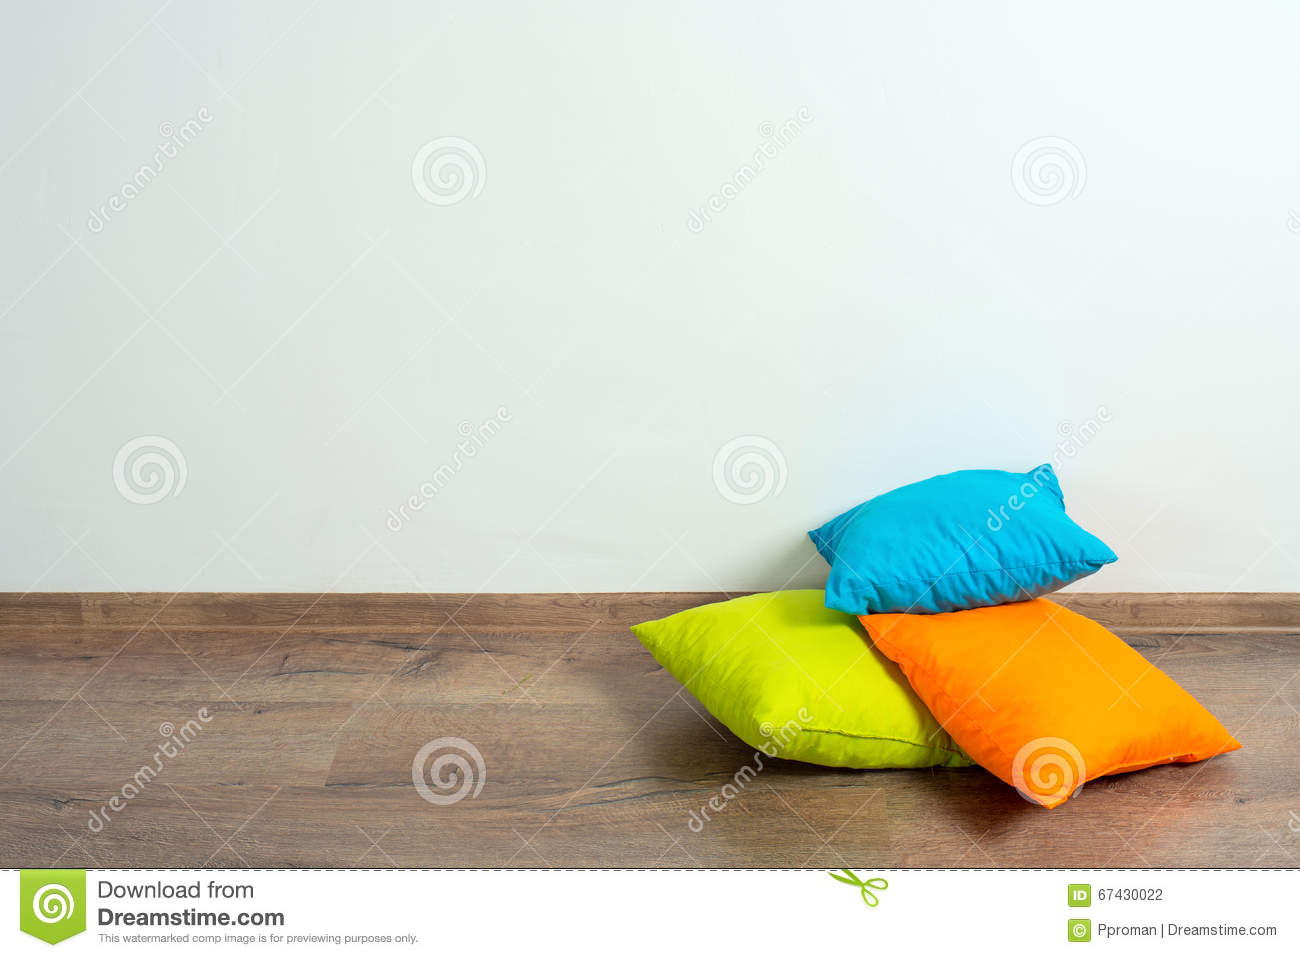 Pillows on floor stock photo. Image of comfortable, blue - 67430022